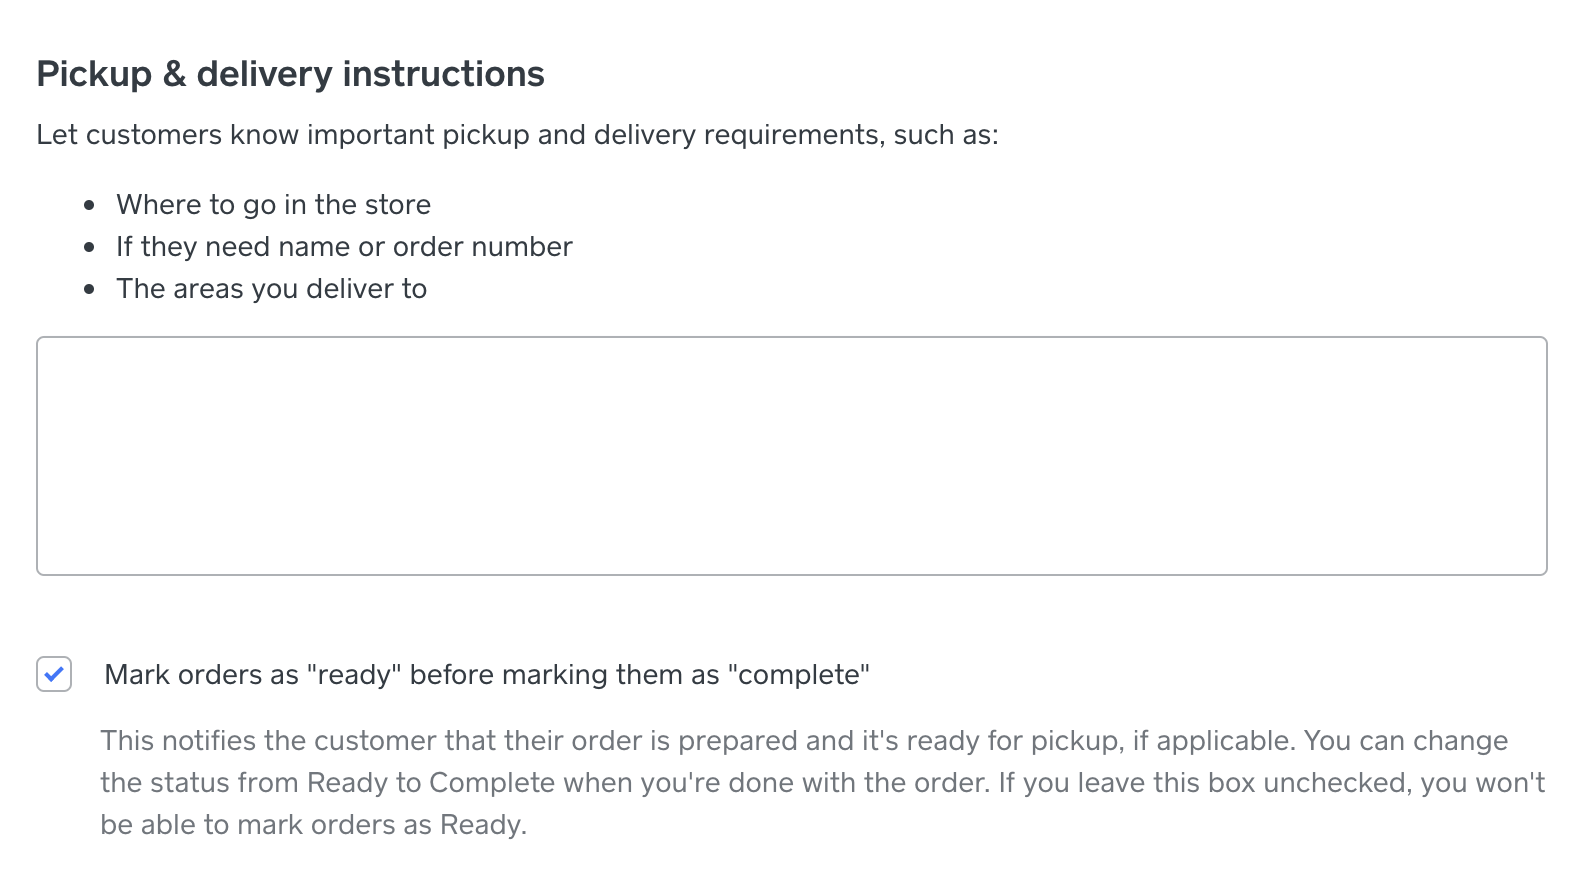 Pickup & delivery instructions